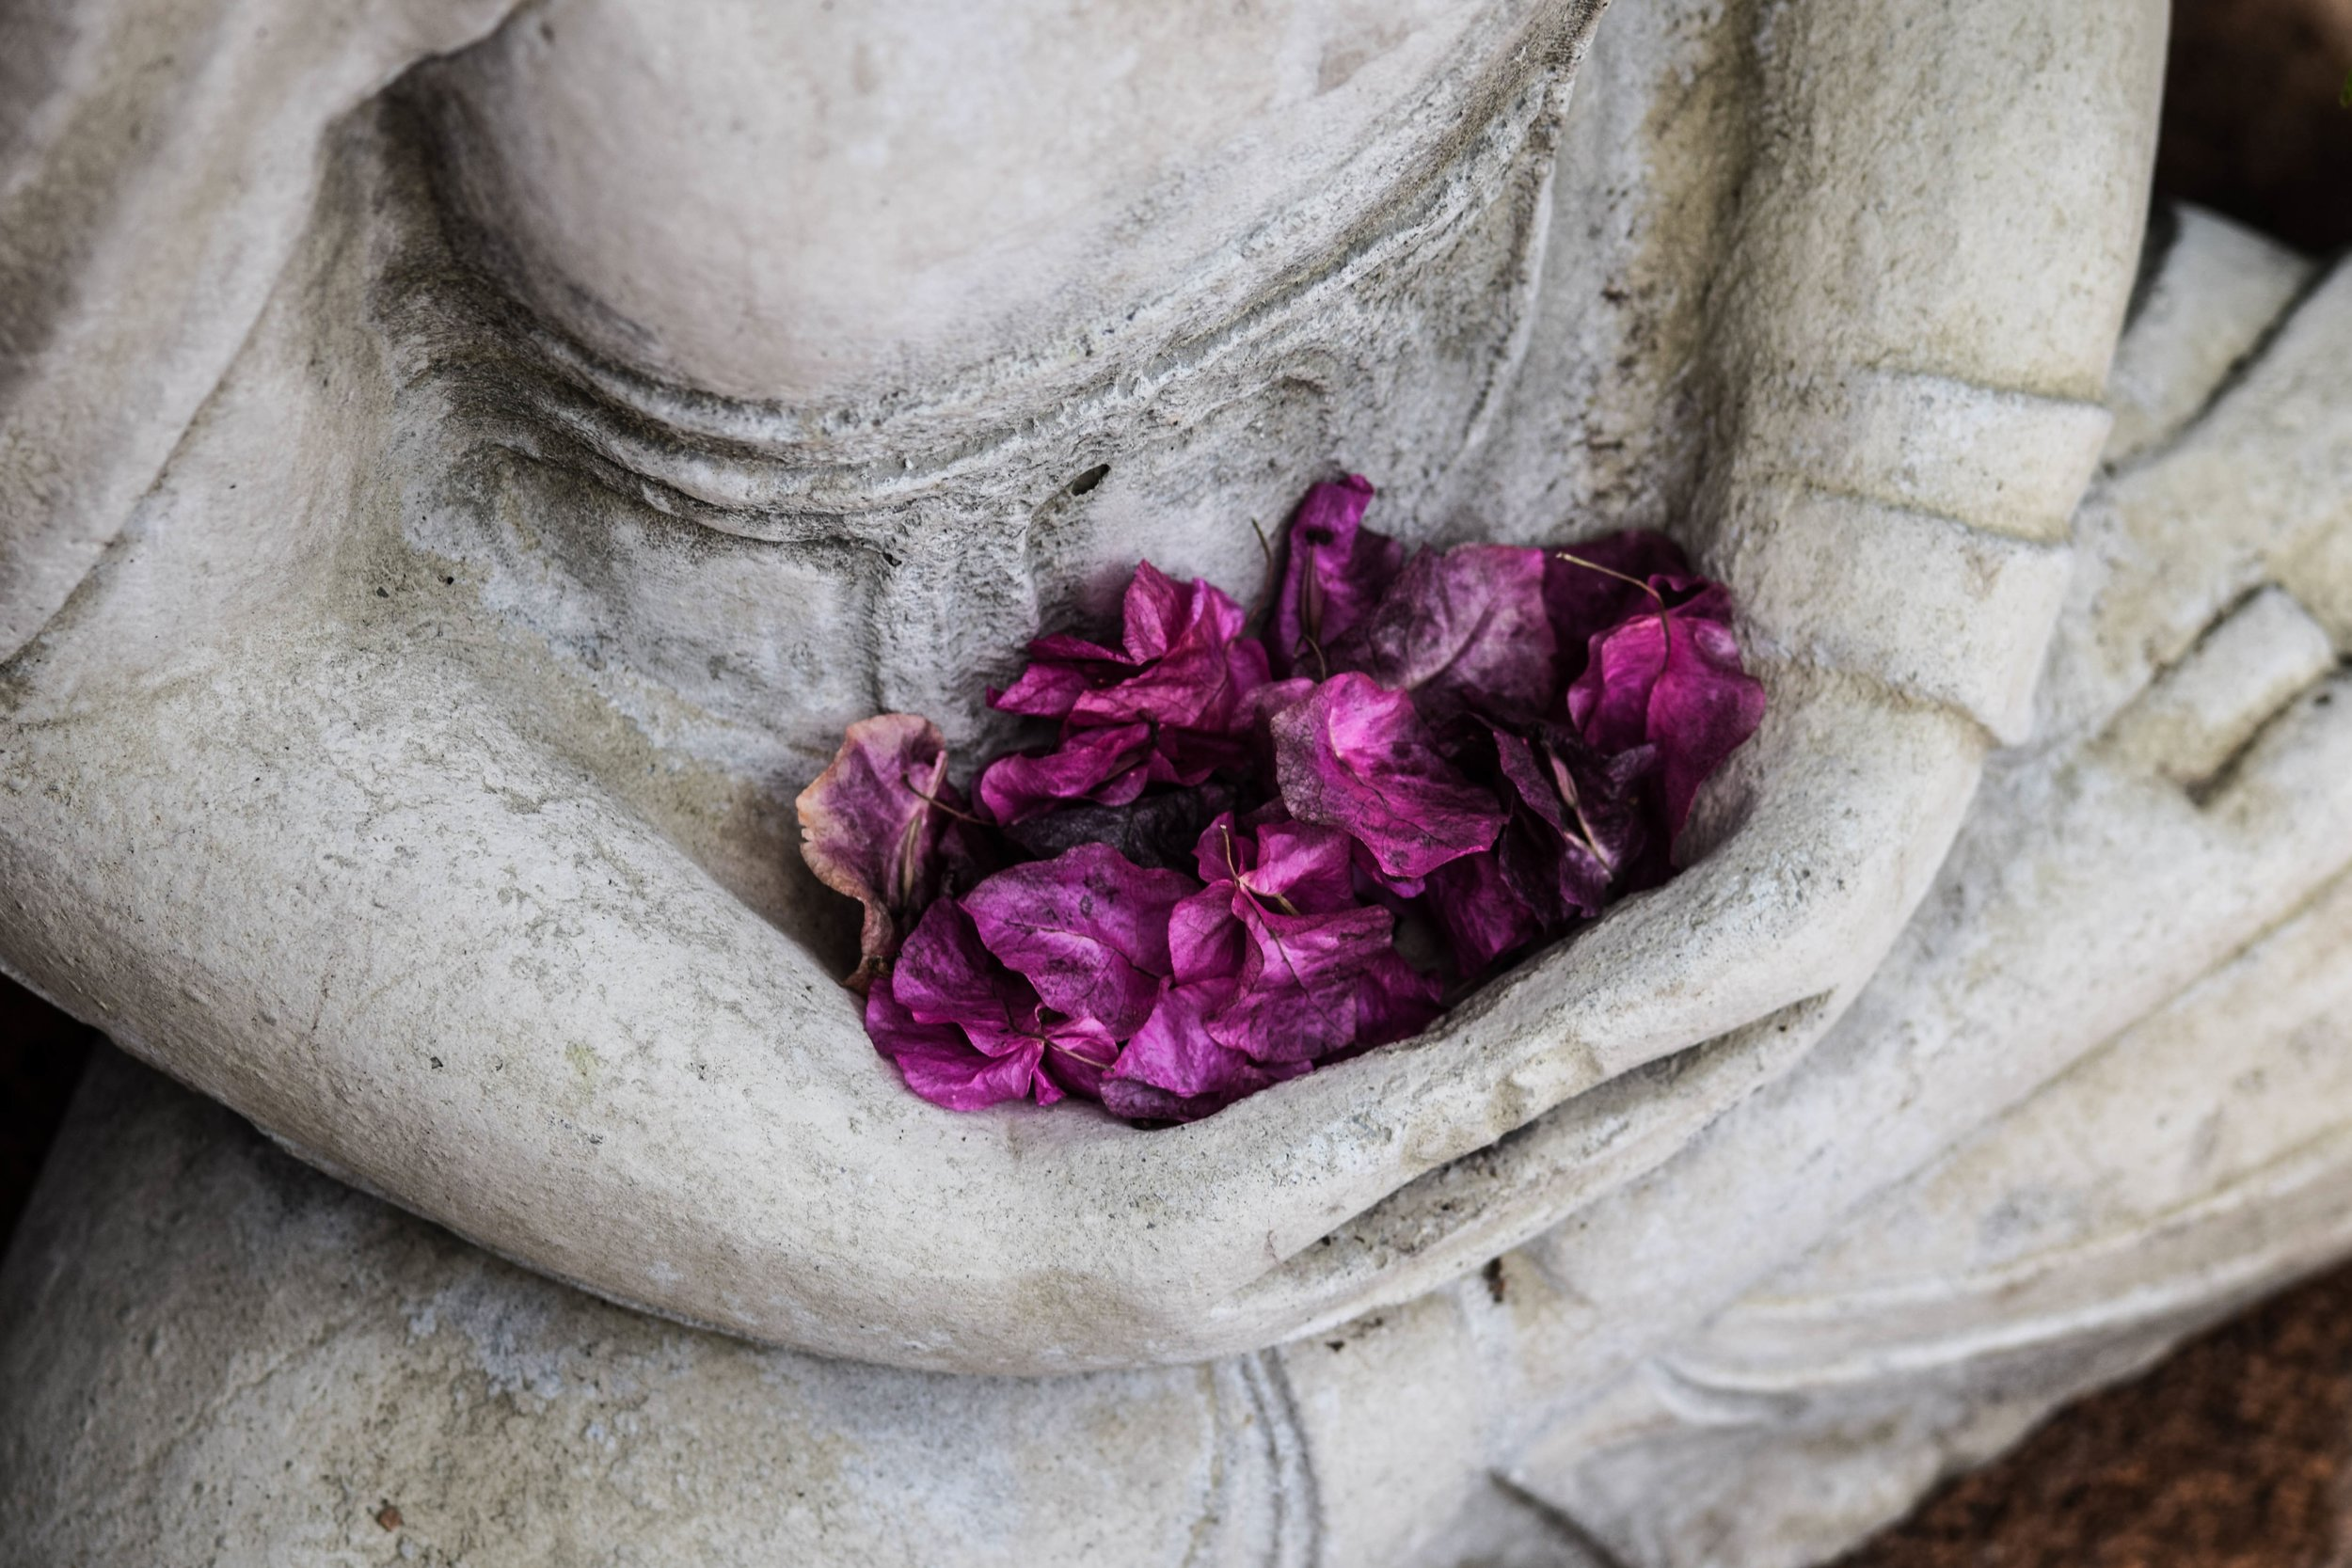 https://unsplash.com/collections/337104/meditation-contemplation?photo=16QrjudiZnE